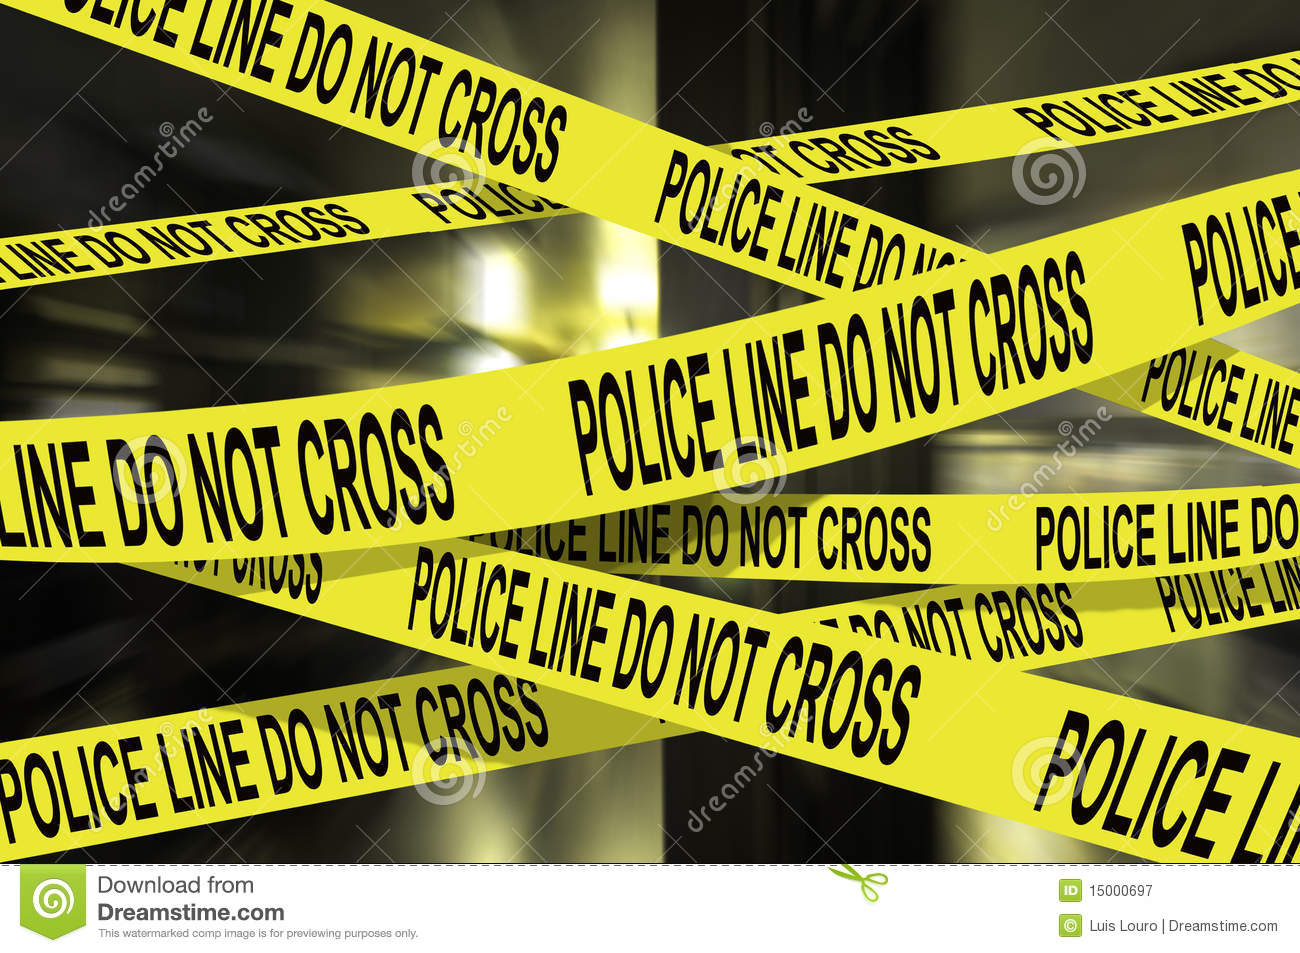 Background image of several police line do not cross yellow tape.